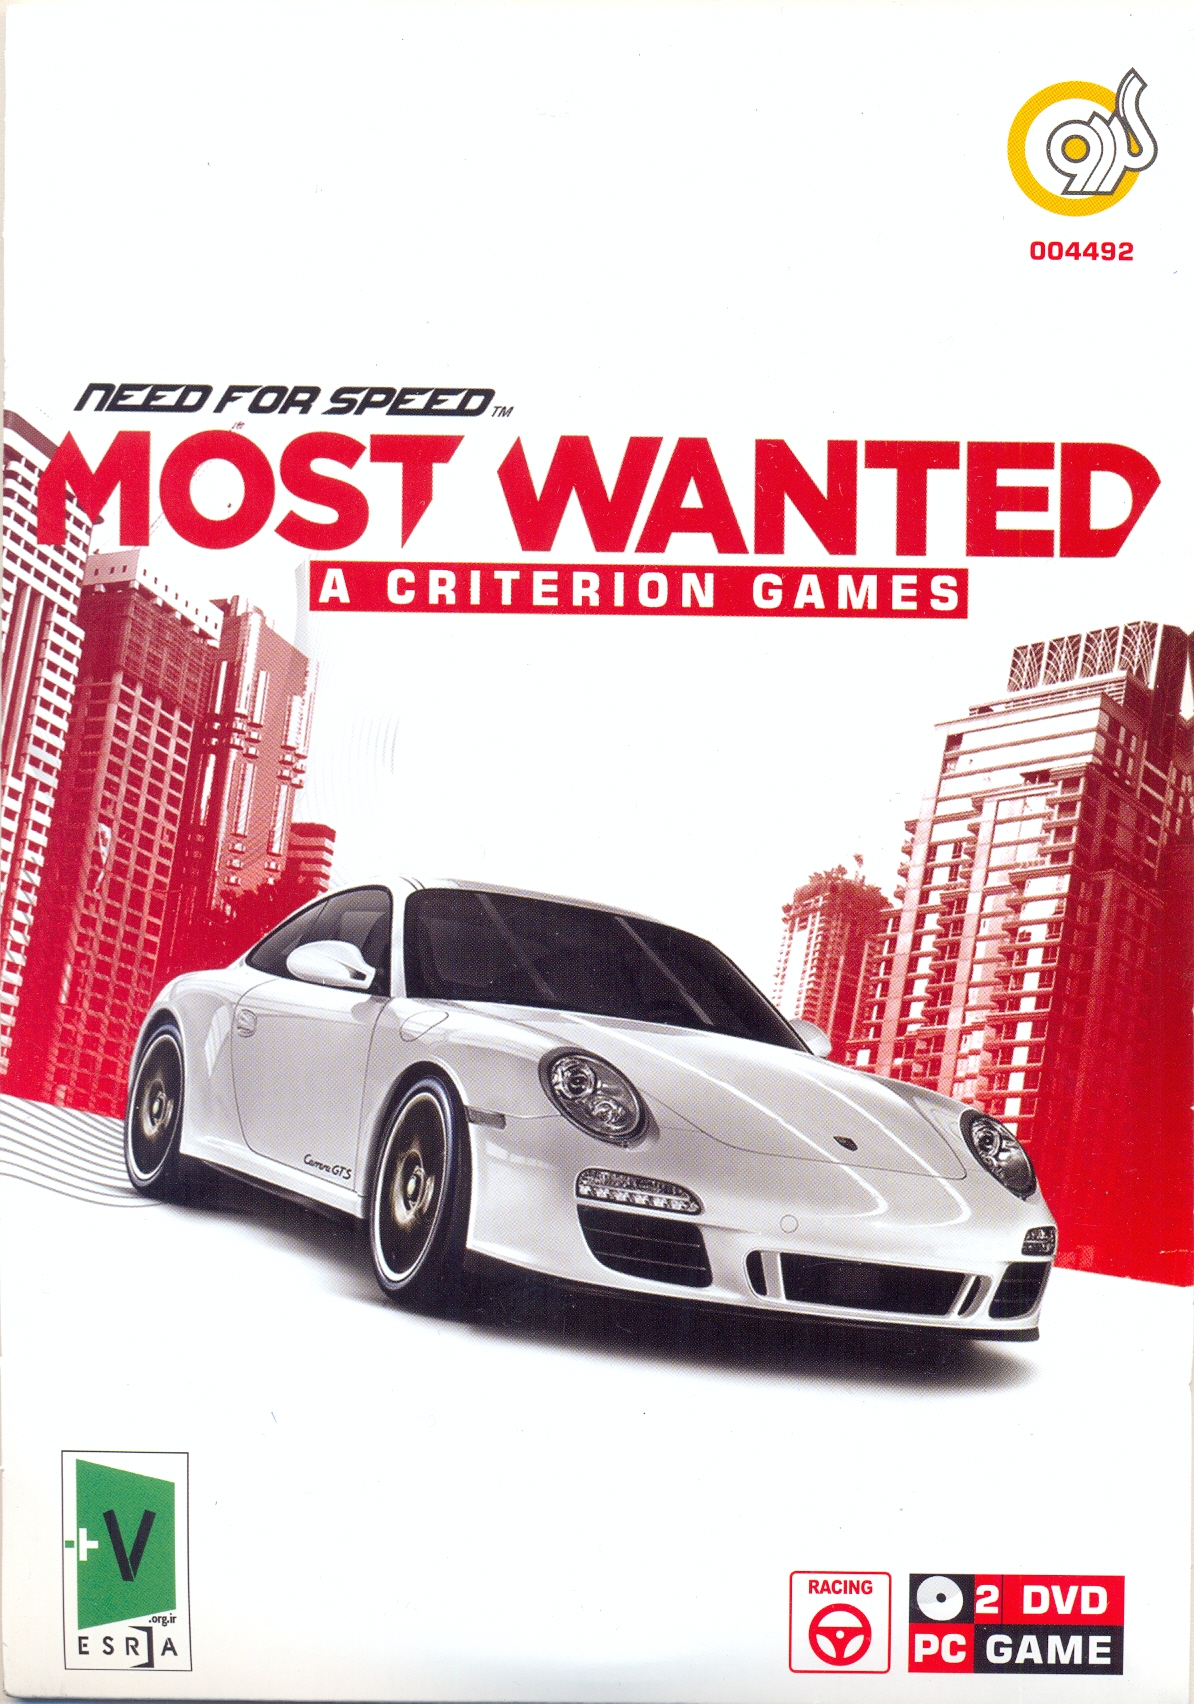 بازی کامپیوتری MOST WANTED ,A CRITERION GAMES